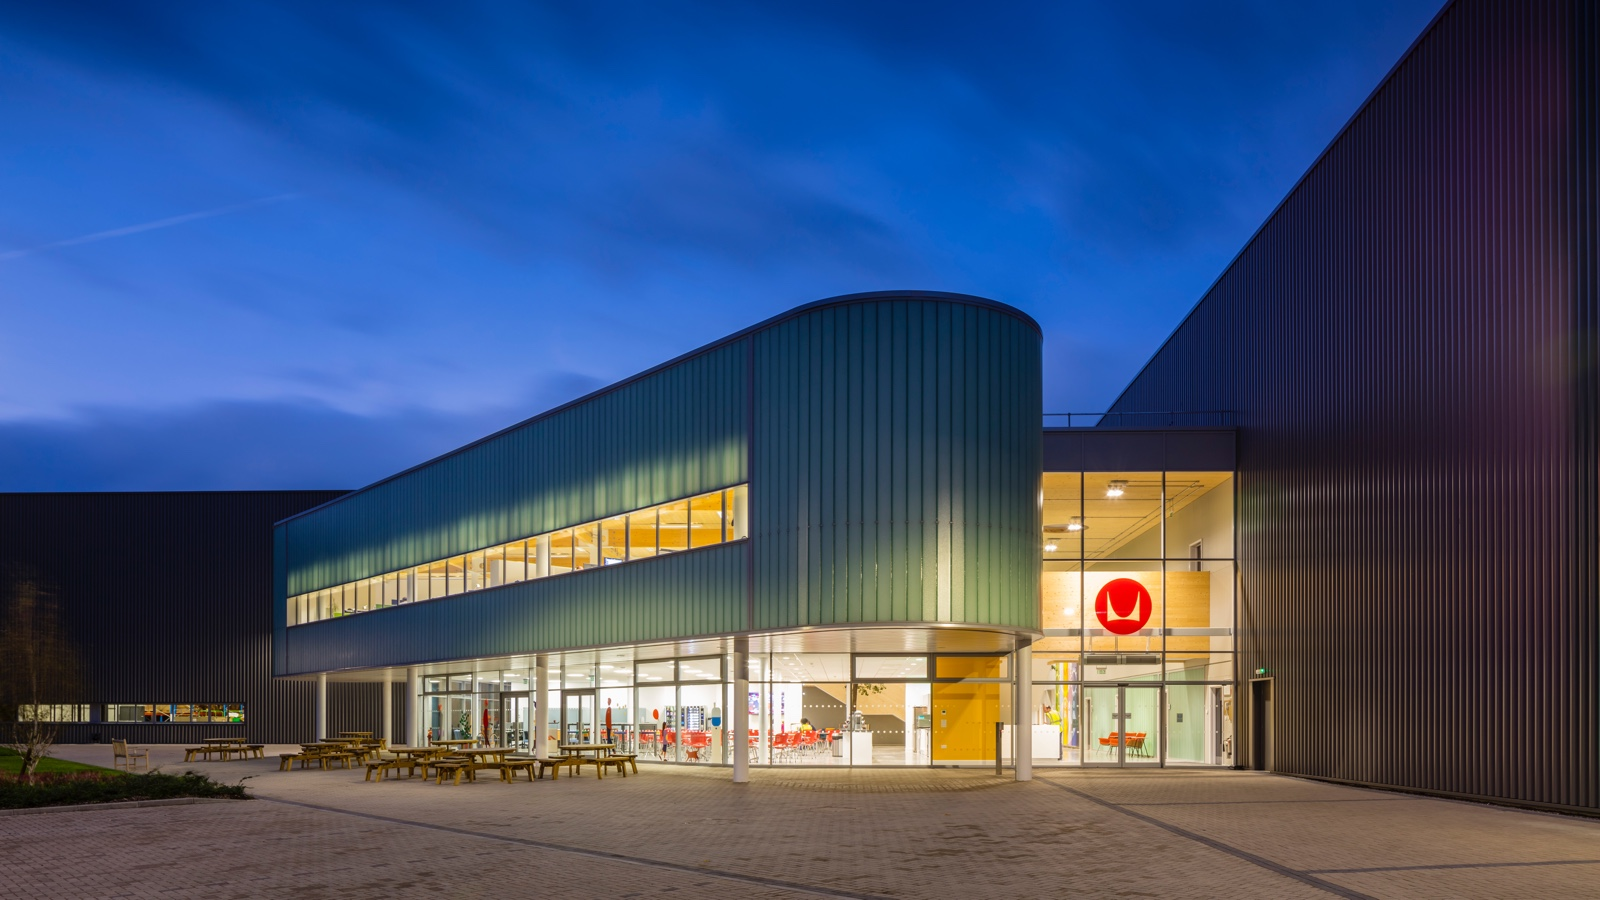 A night photo of the exterior of a Herman Miller manufacturing facility in the UK.